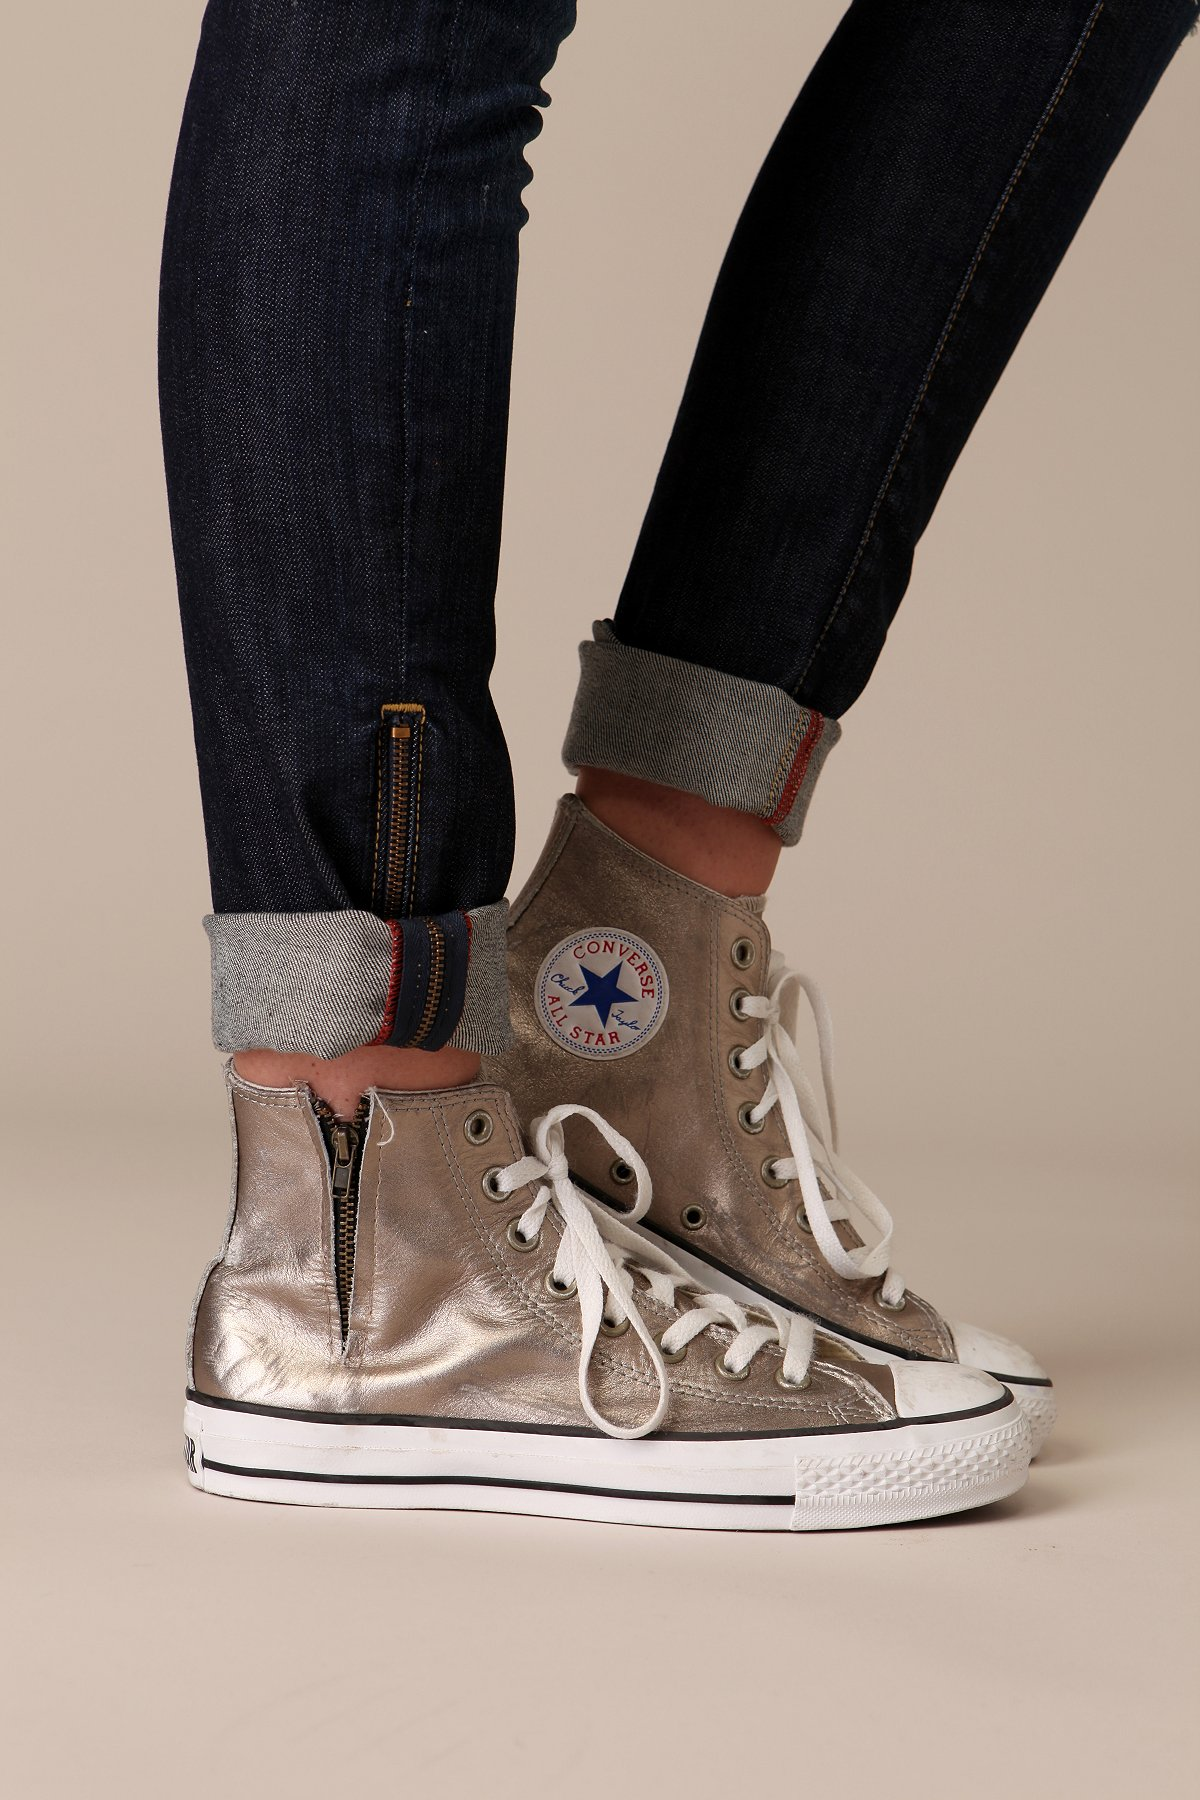 Metallic Zipper Converse